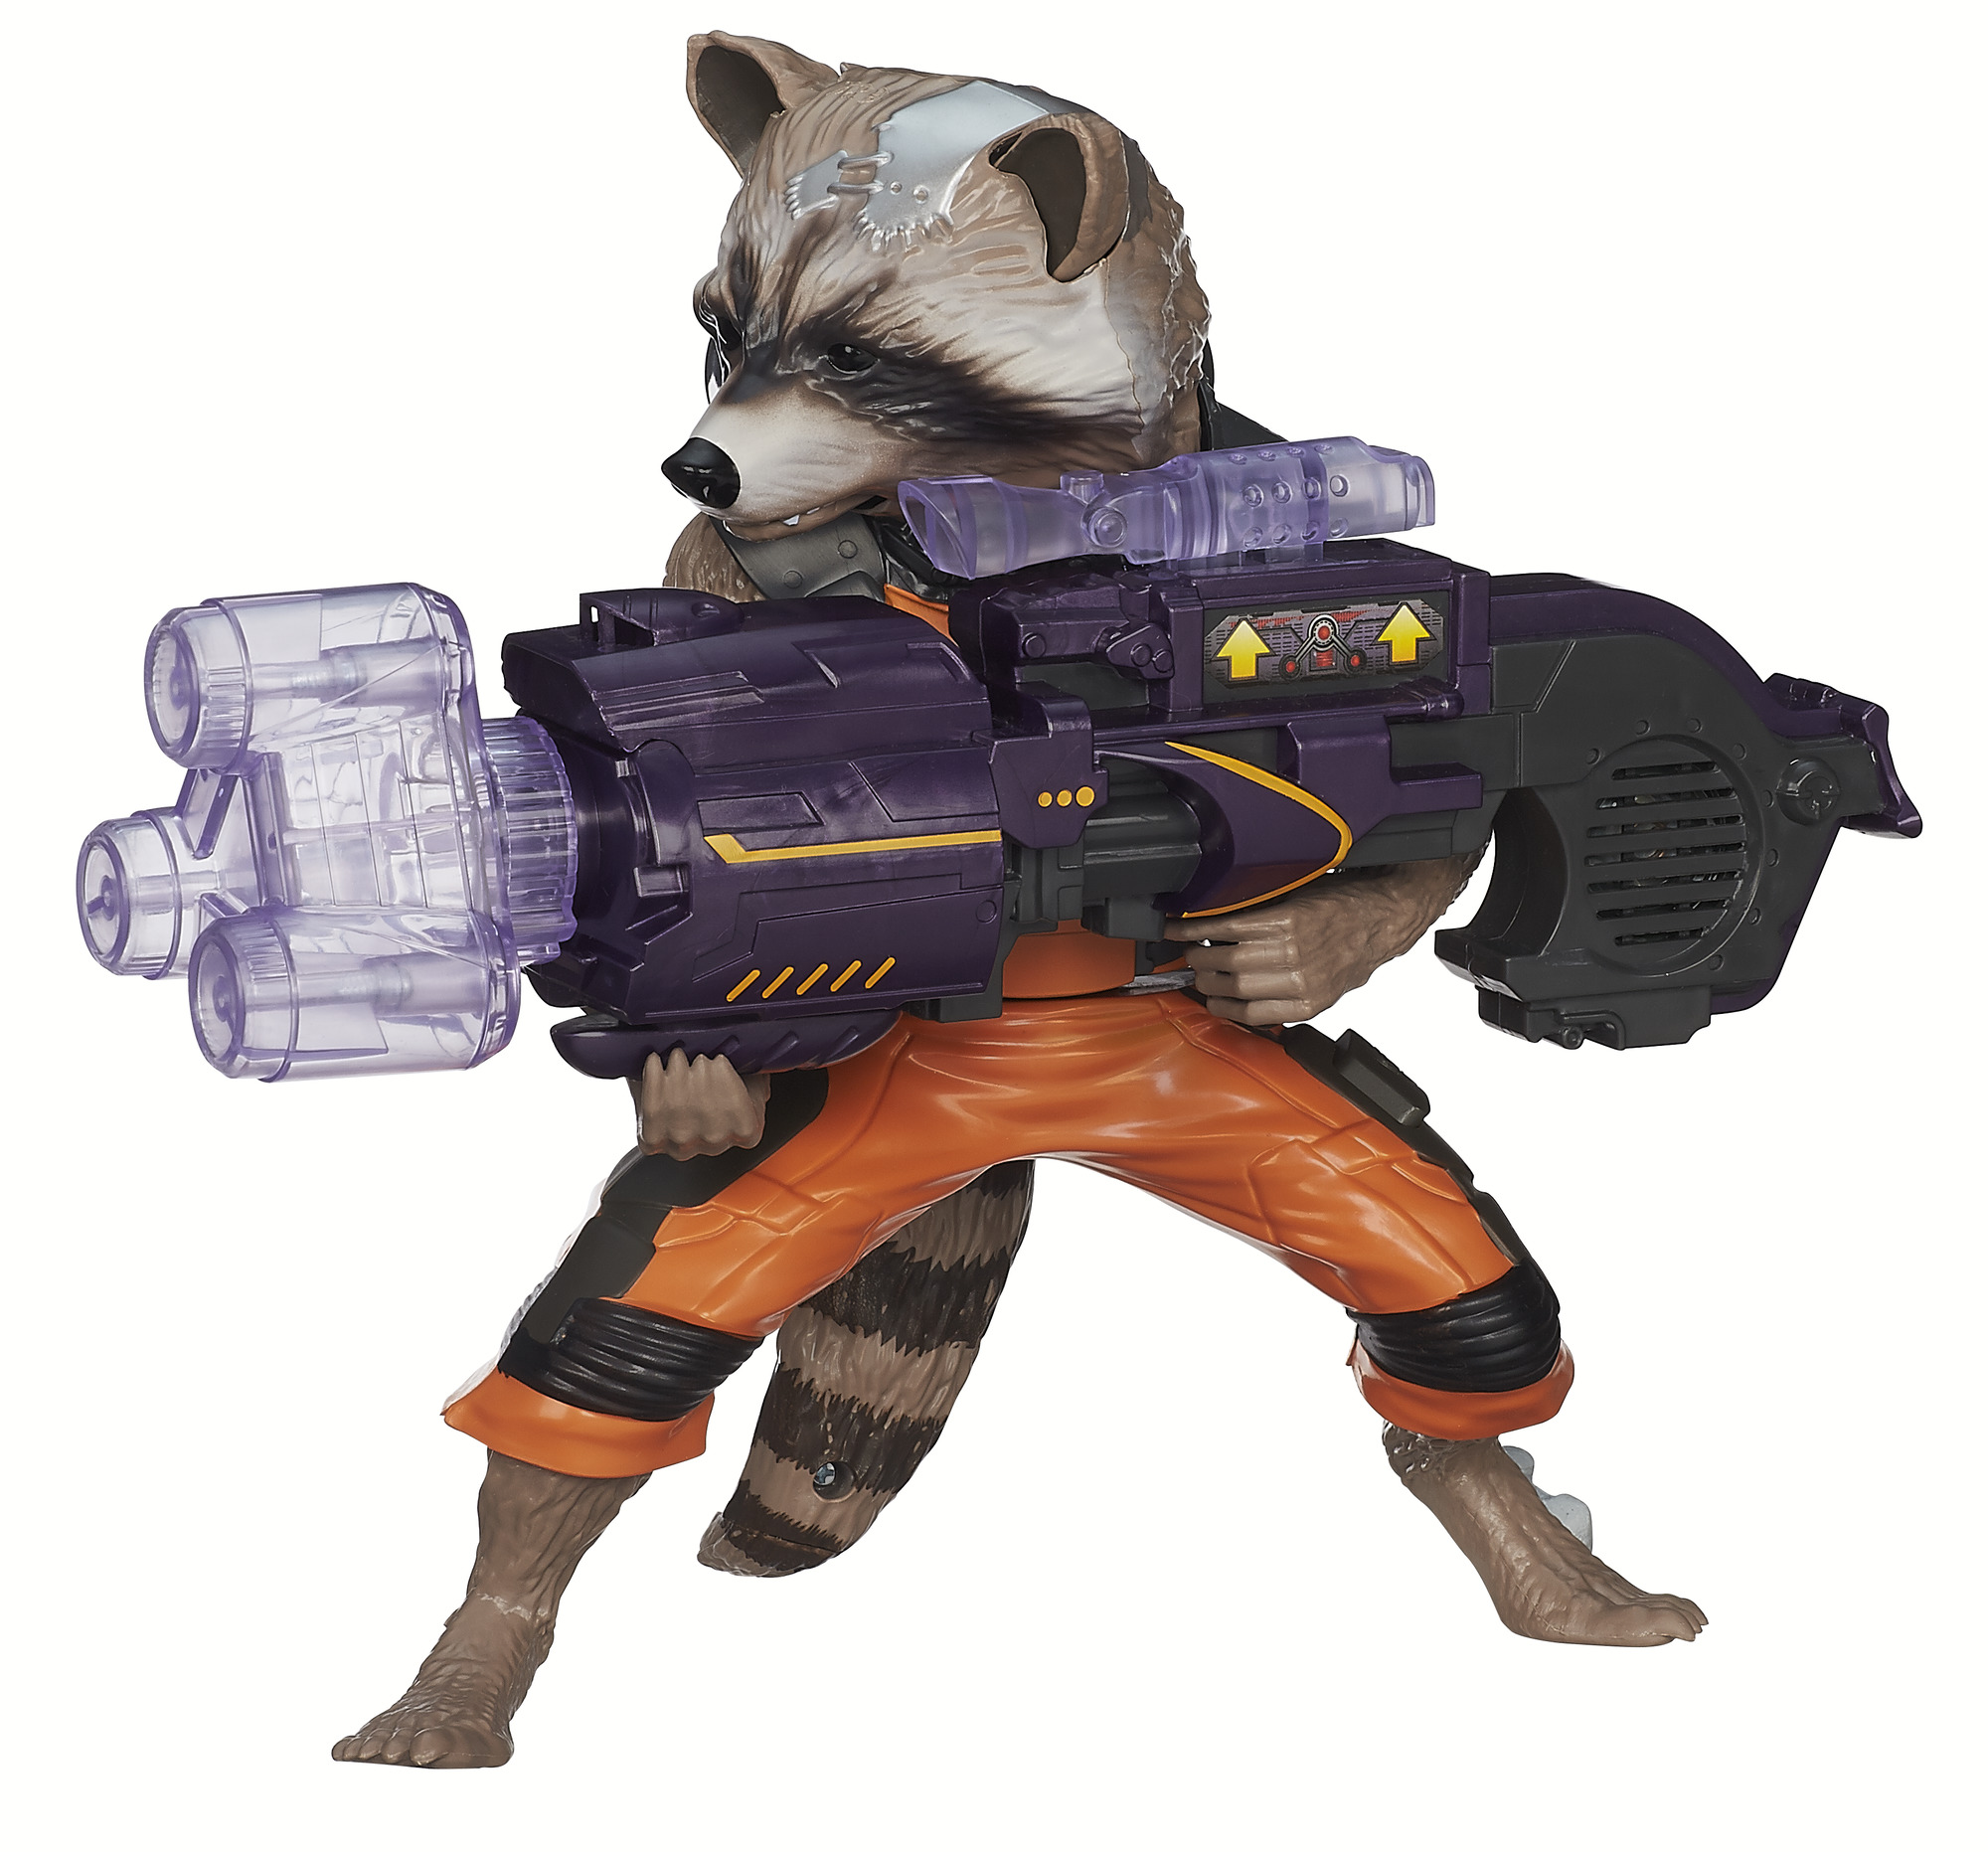 Marvel Guardians Of The Galaxy Big Blastin' Rocket Raccoon Action Figure